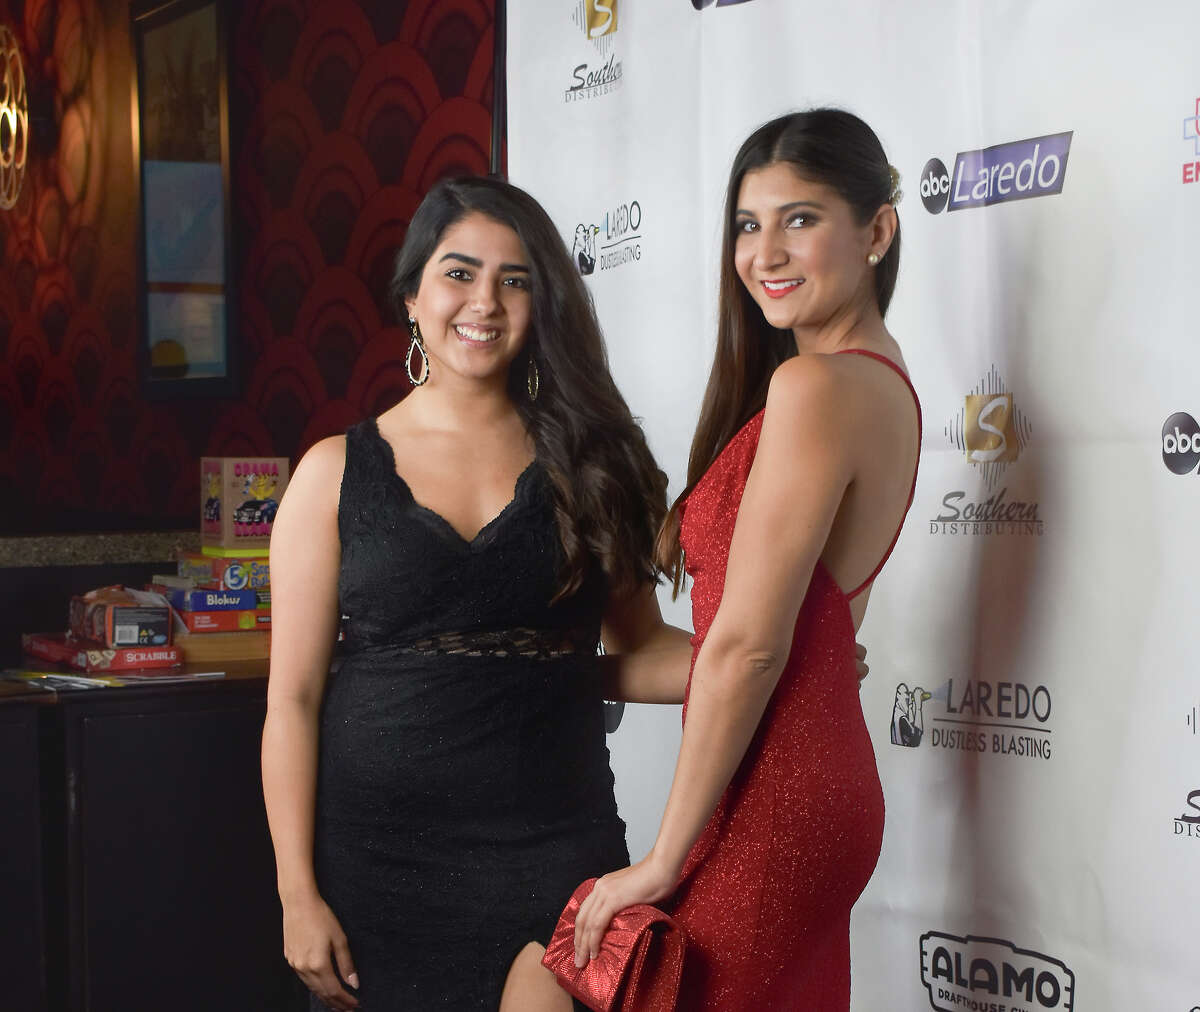 Laredoans walked the red carpet at the Alamo Drafthouse during the Laredo Film Society's 'A Night in Hollywood' Oscars watch party. The event was held in partnership with ABC-Laredo.